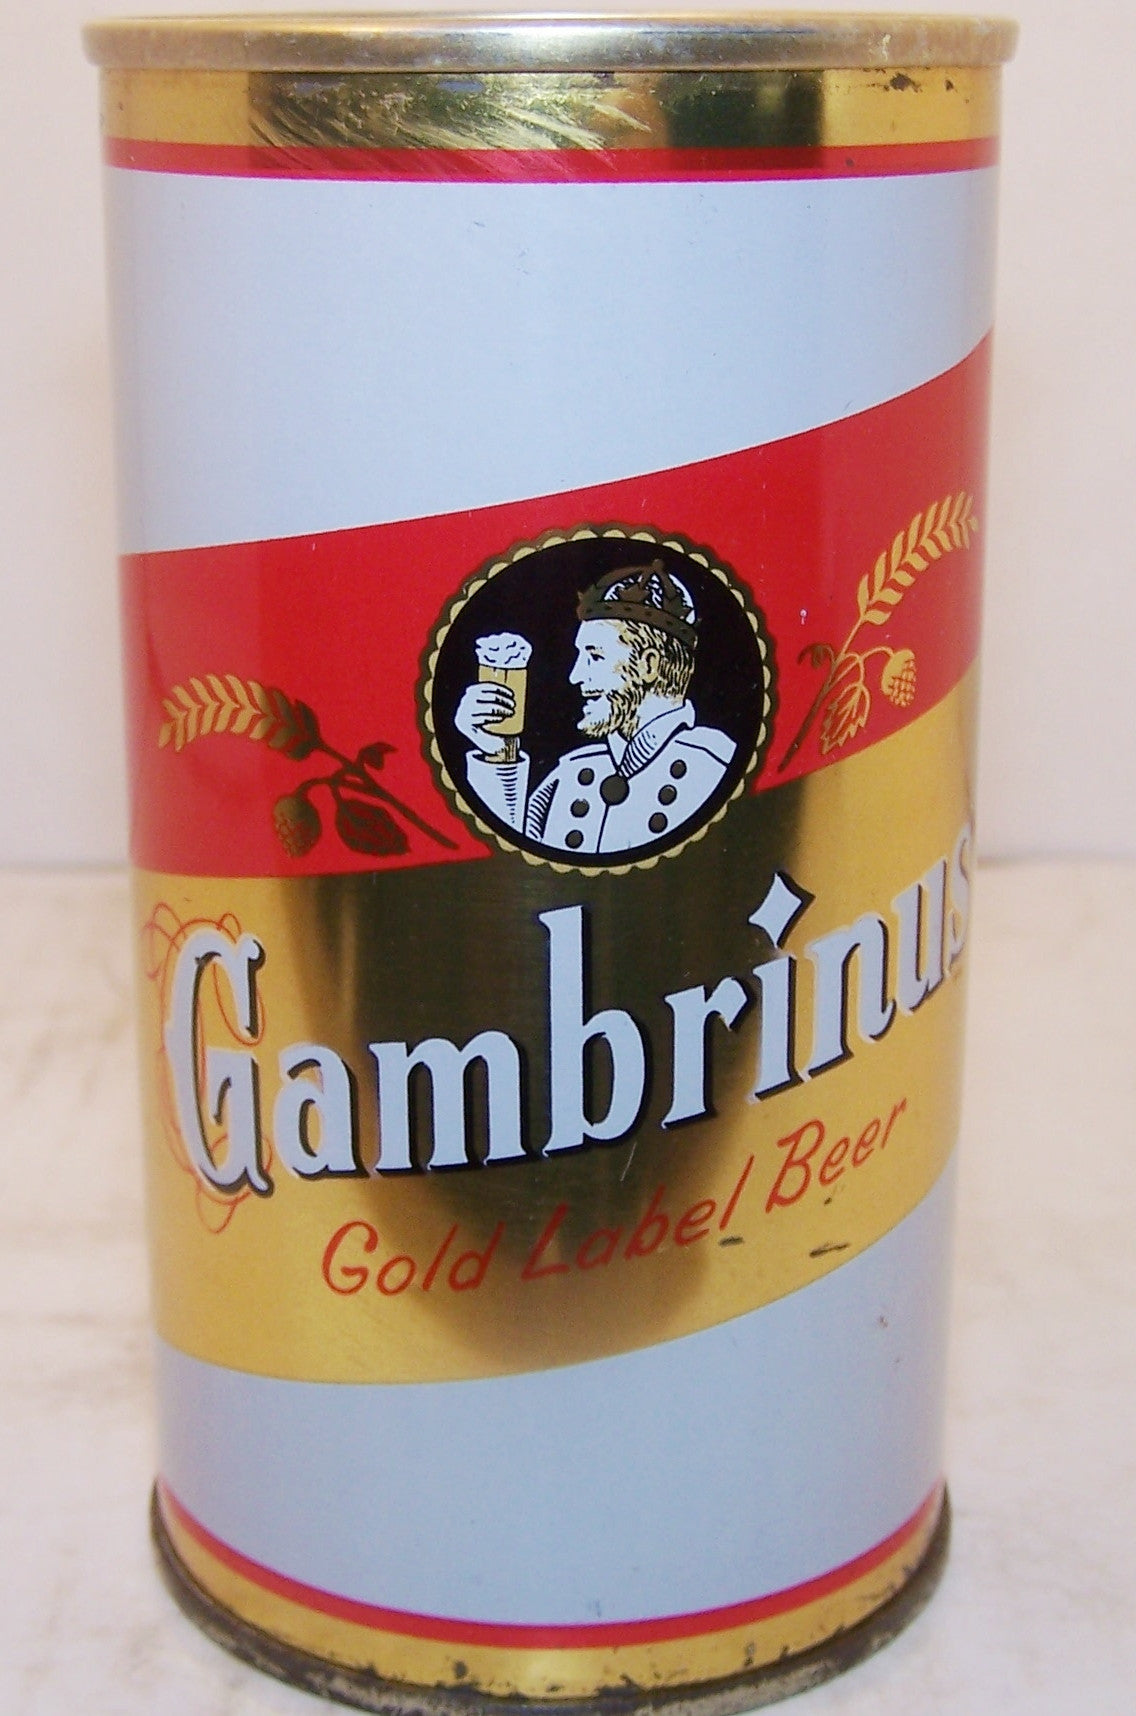 Gambrinus Gold Label Beer, USBC II 67-2 Grade 1/1+ Sold 2/20/15